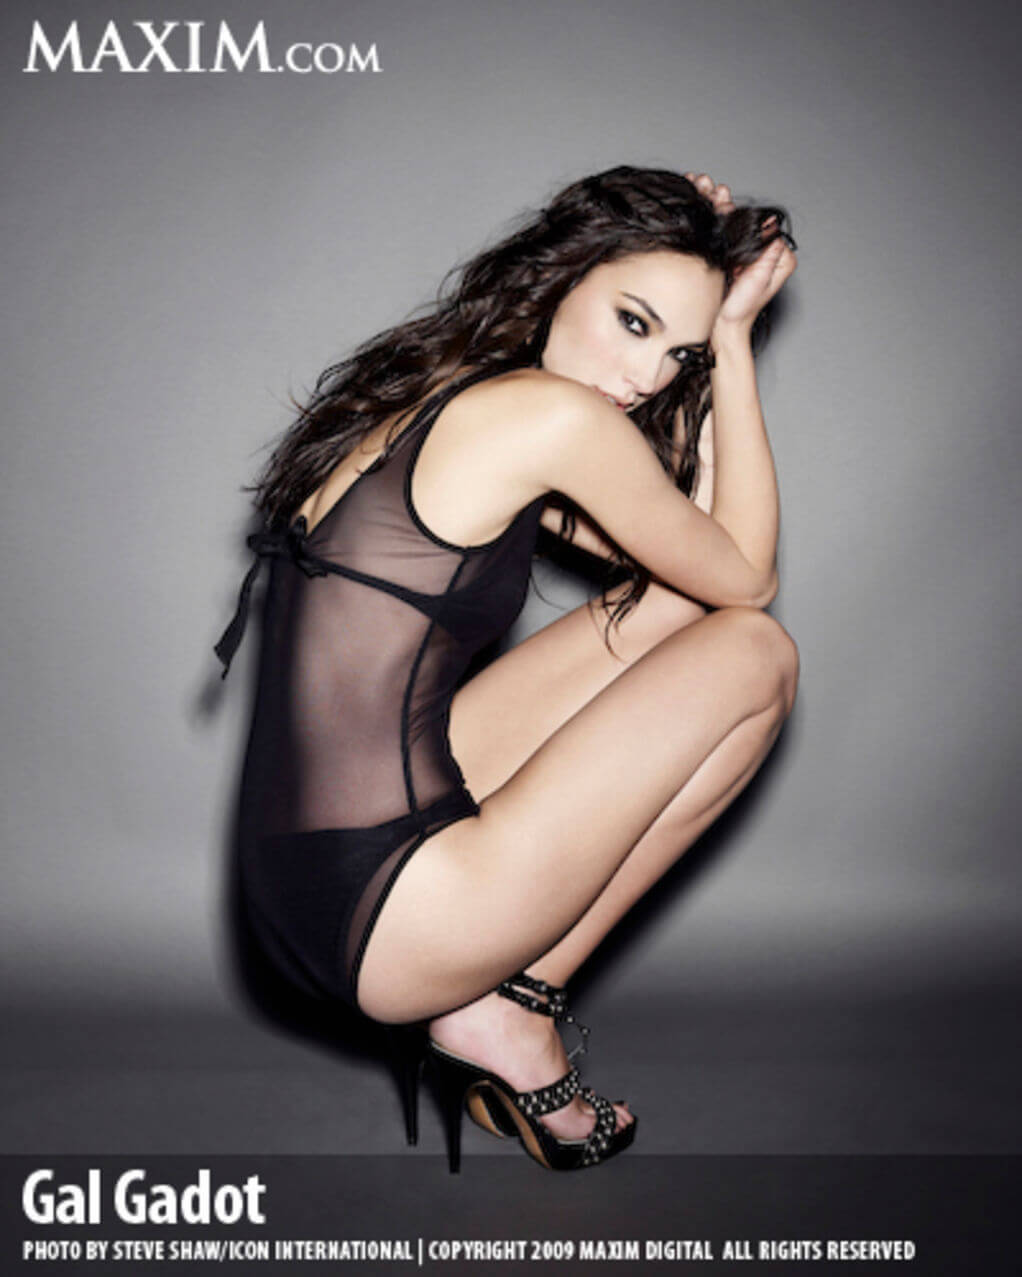 Gal Gadot Lingerie Shoot For Maxim 3 | Creative Ads and